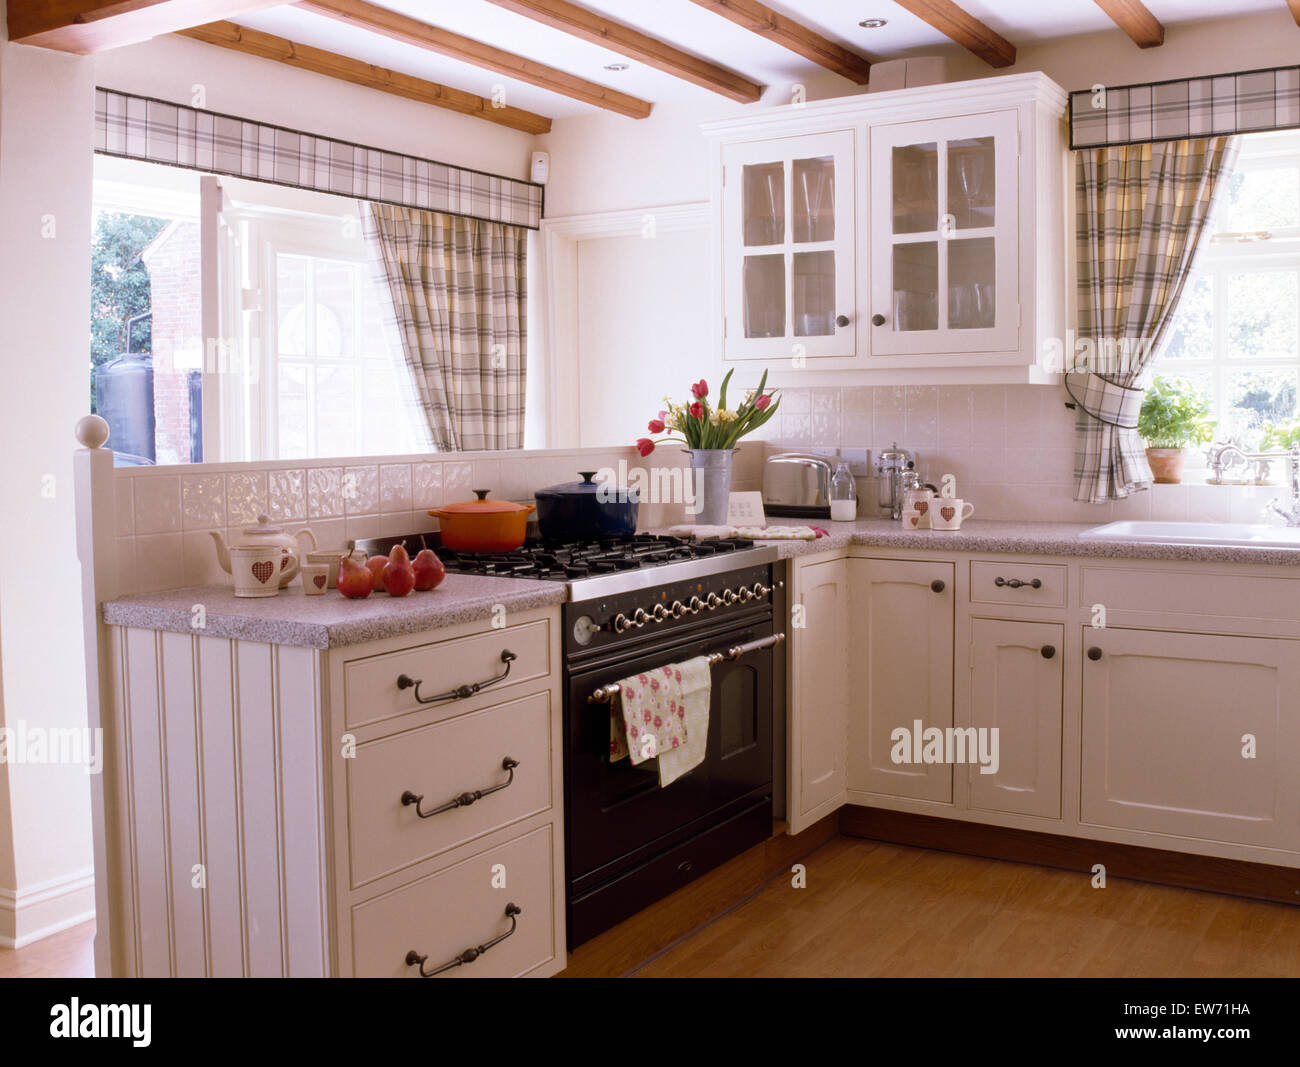 Black and white checked curtains - Black Range Oven In White Cottage Kitchen With Gray Checked Curtains On The Windows